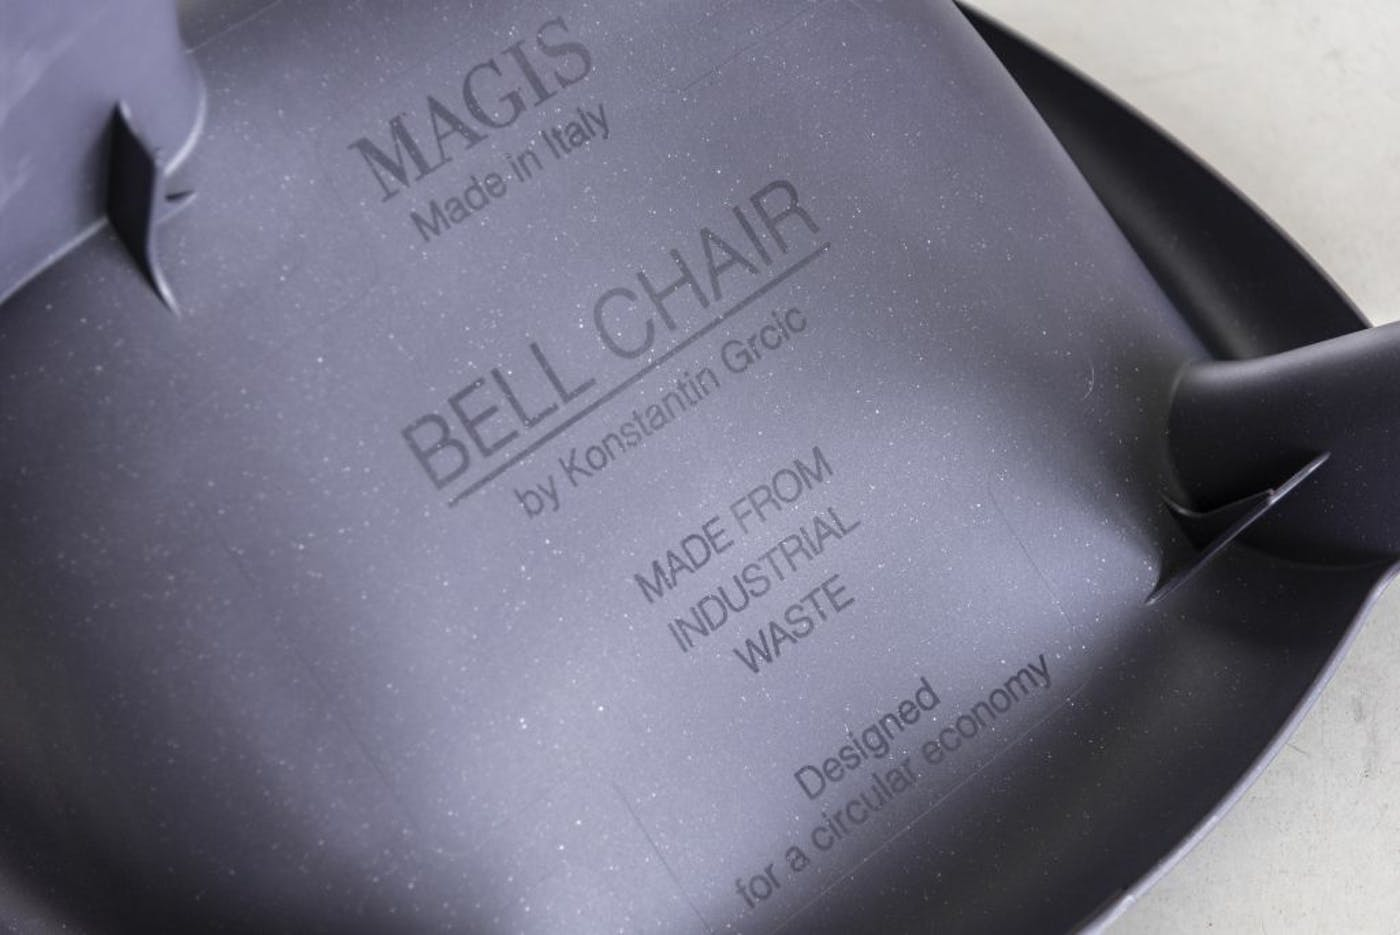 Magis bell chair product detail SD2900 midnight 01 1 lr